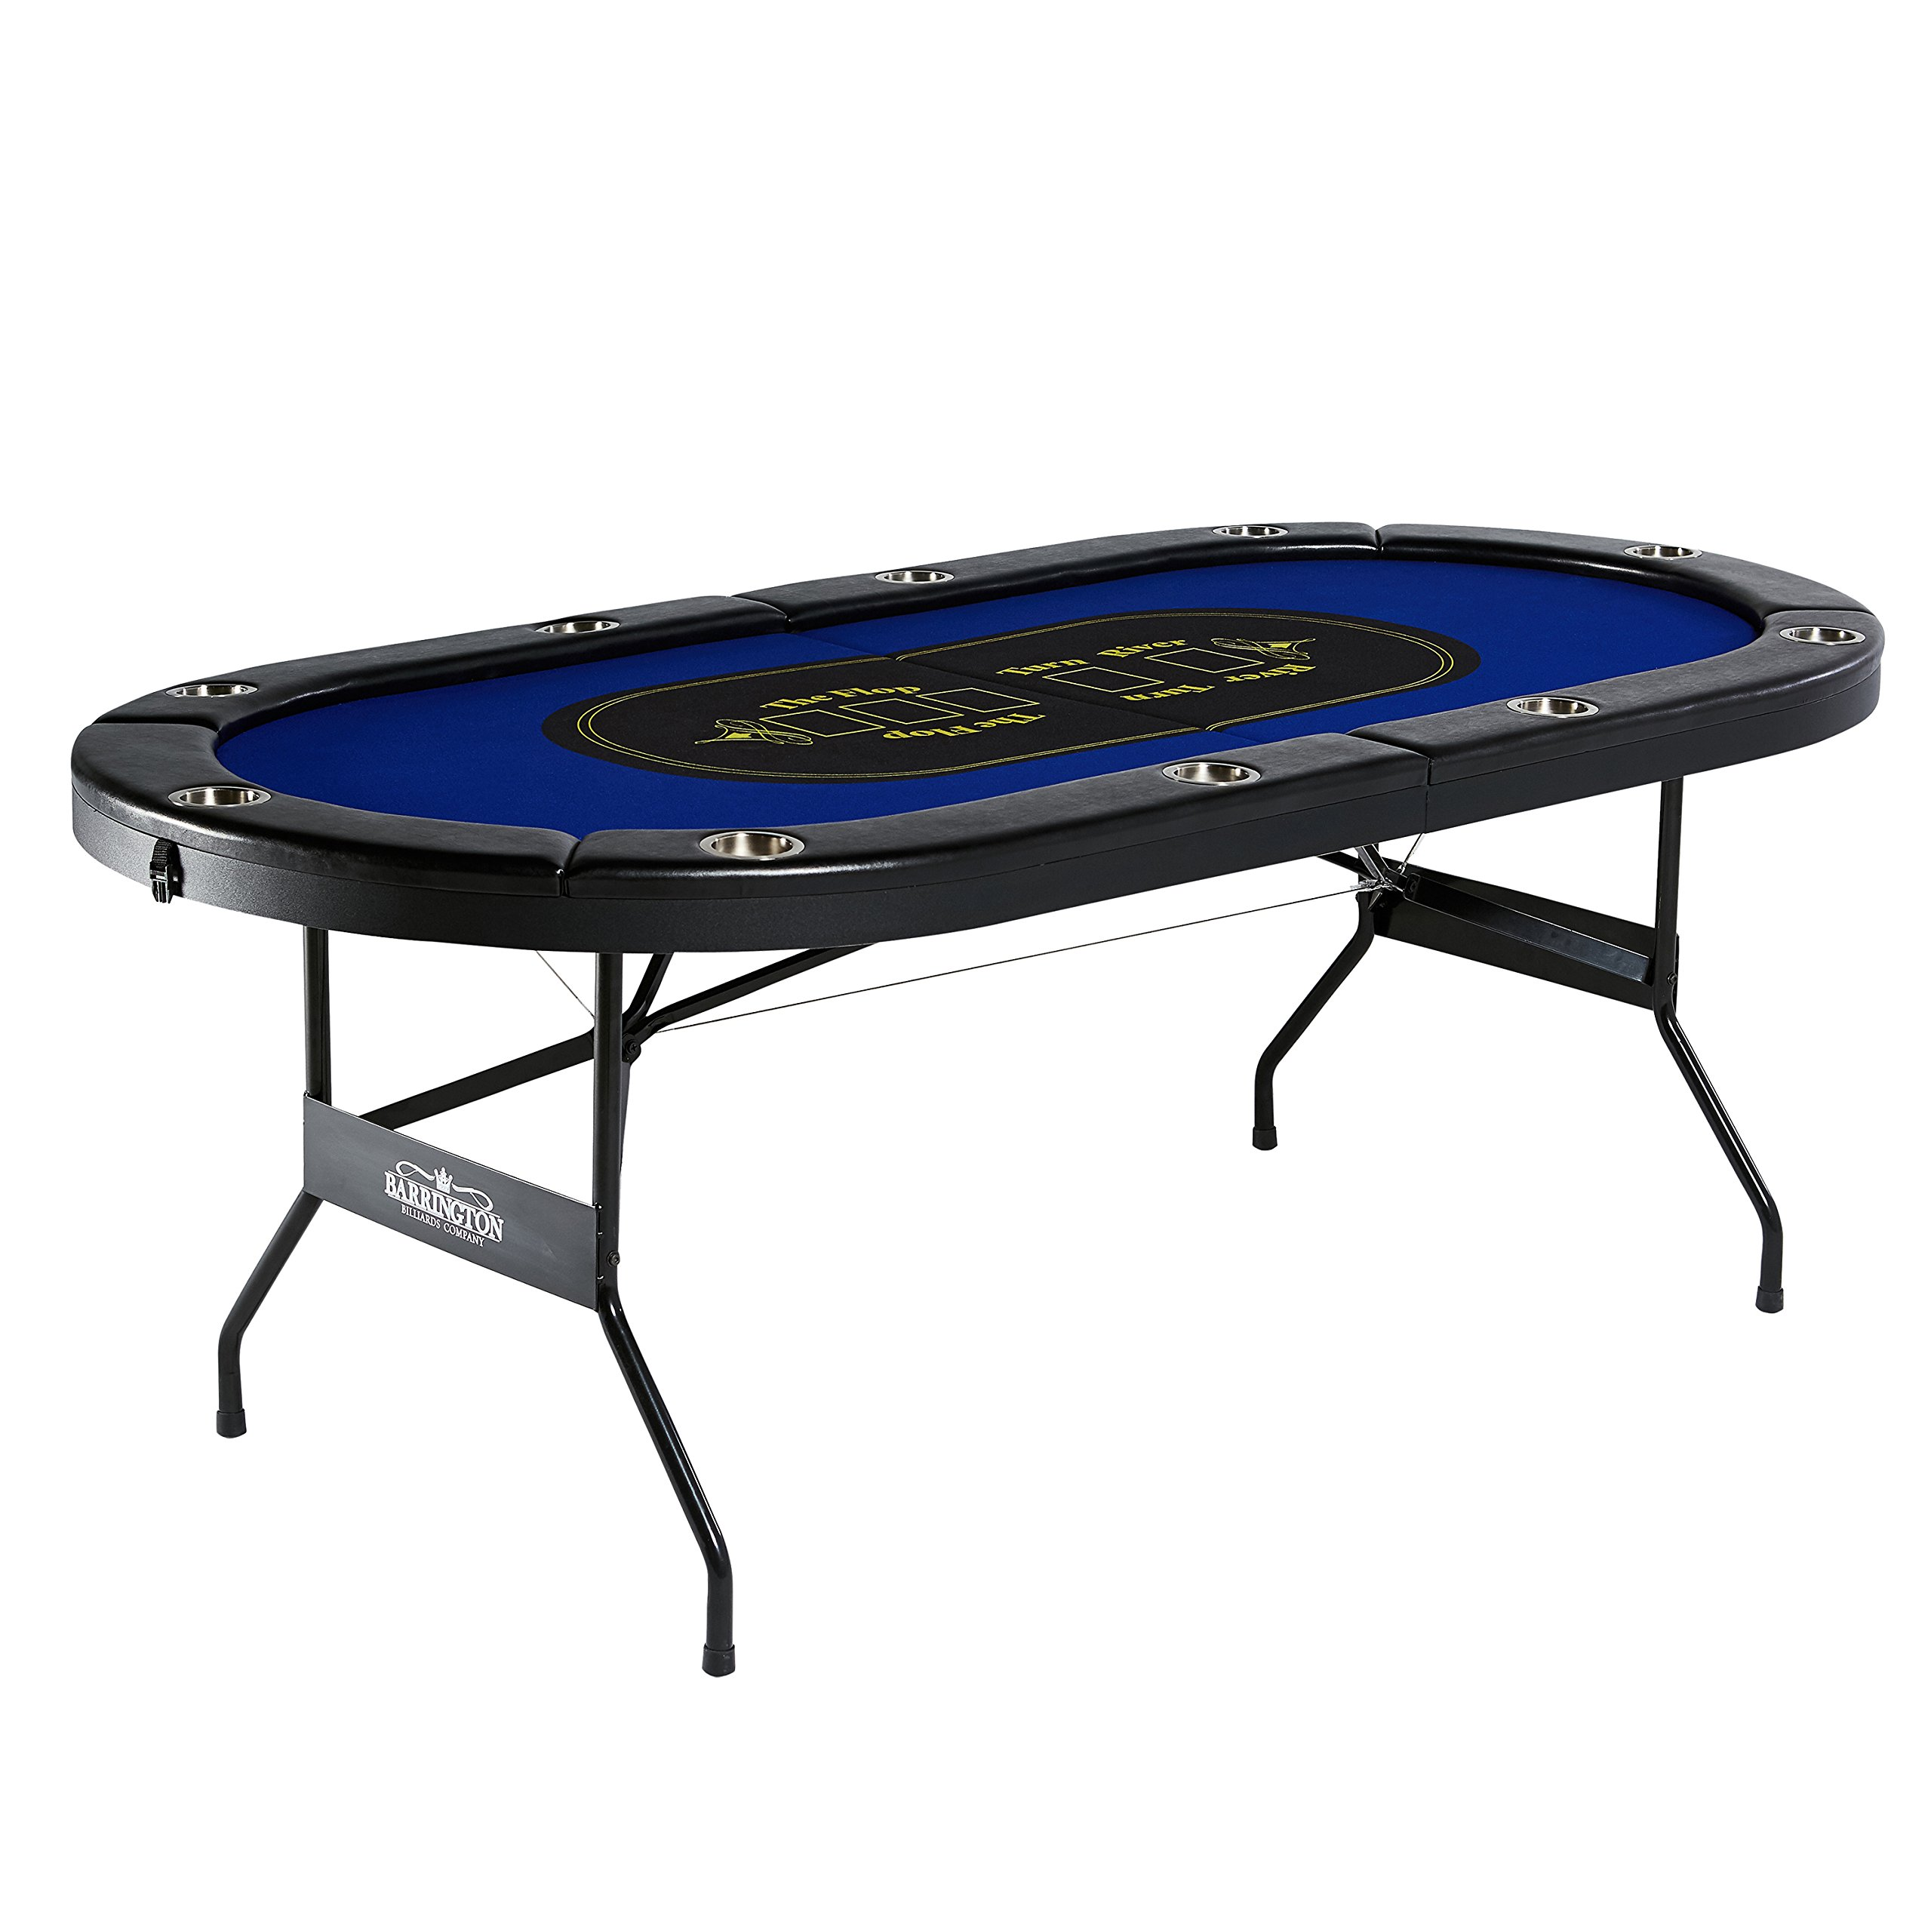 Barrington Texas Holdem Poker Table for 10 Players with Padded Rails and Cup Holders by Barrington Billiards